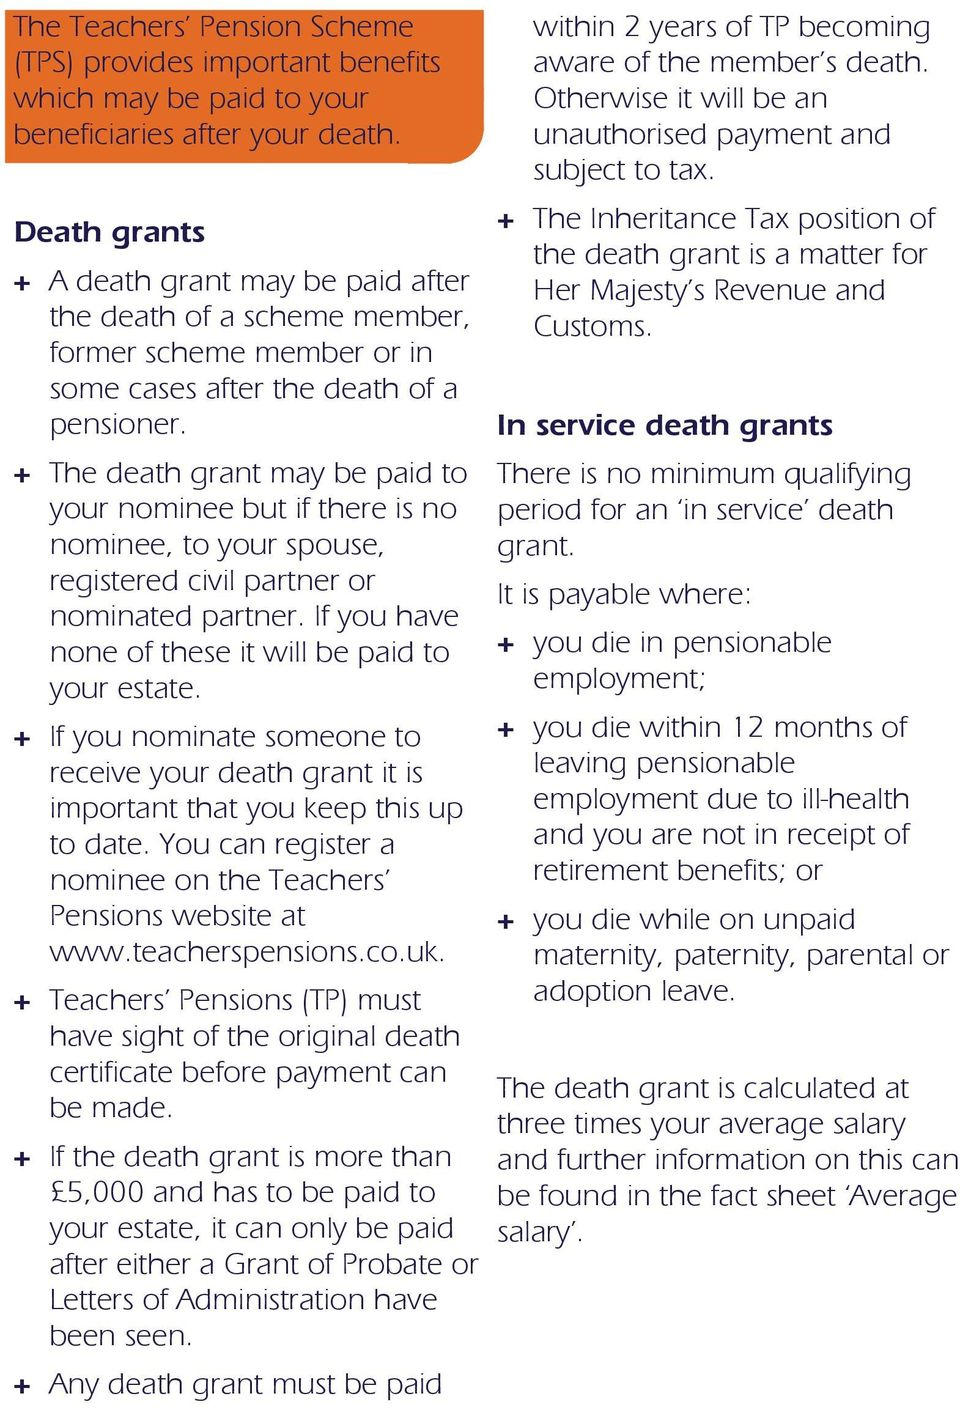 Death grants + A death grant may be paid after the death of a scheme member, former scheme member or in some cases after the death of a pensioner.